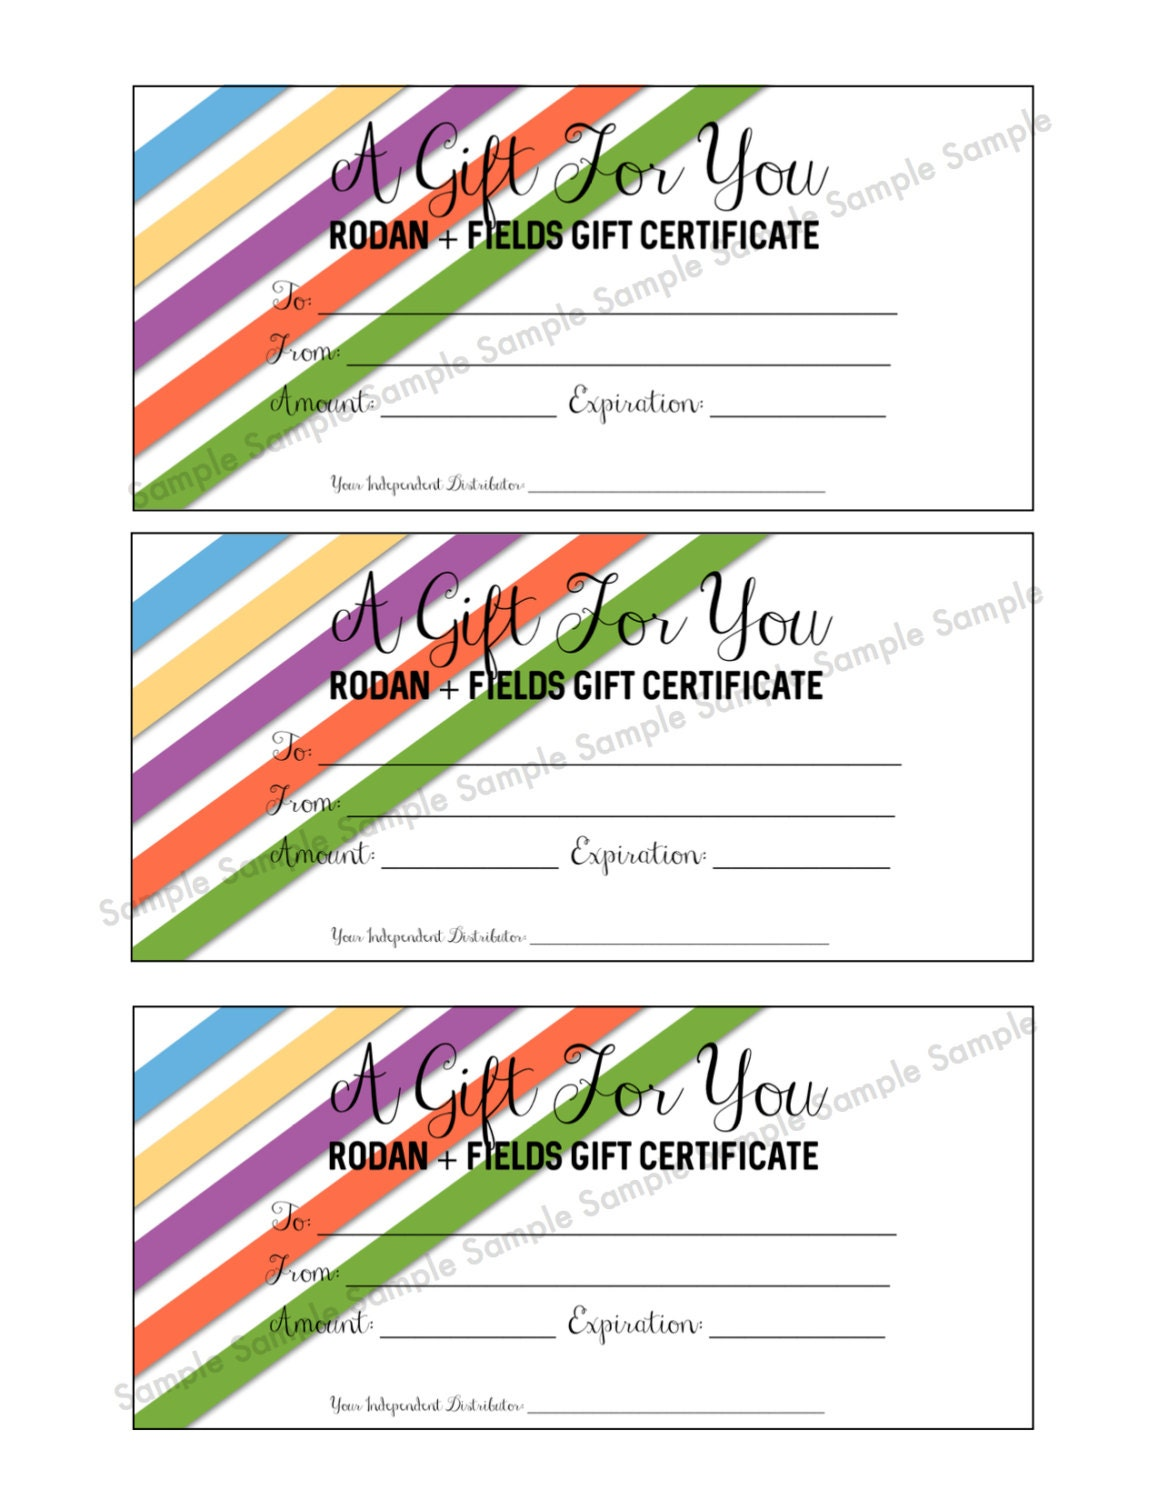 download gift certificate